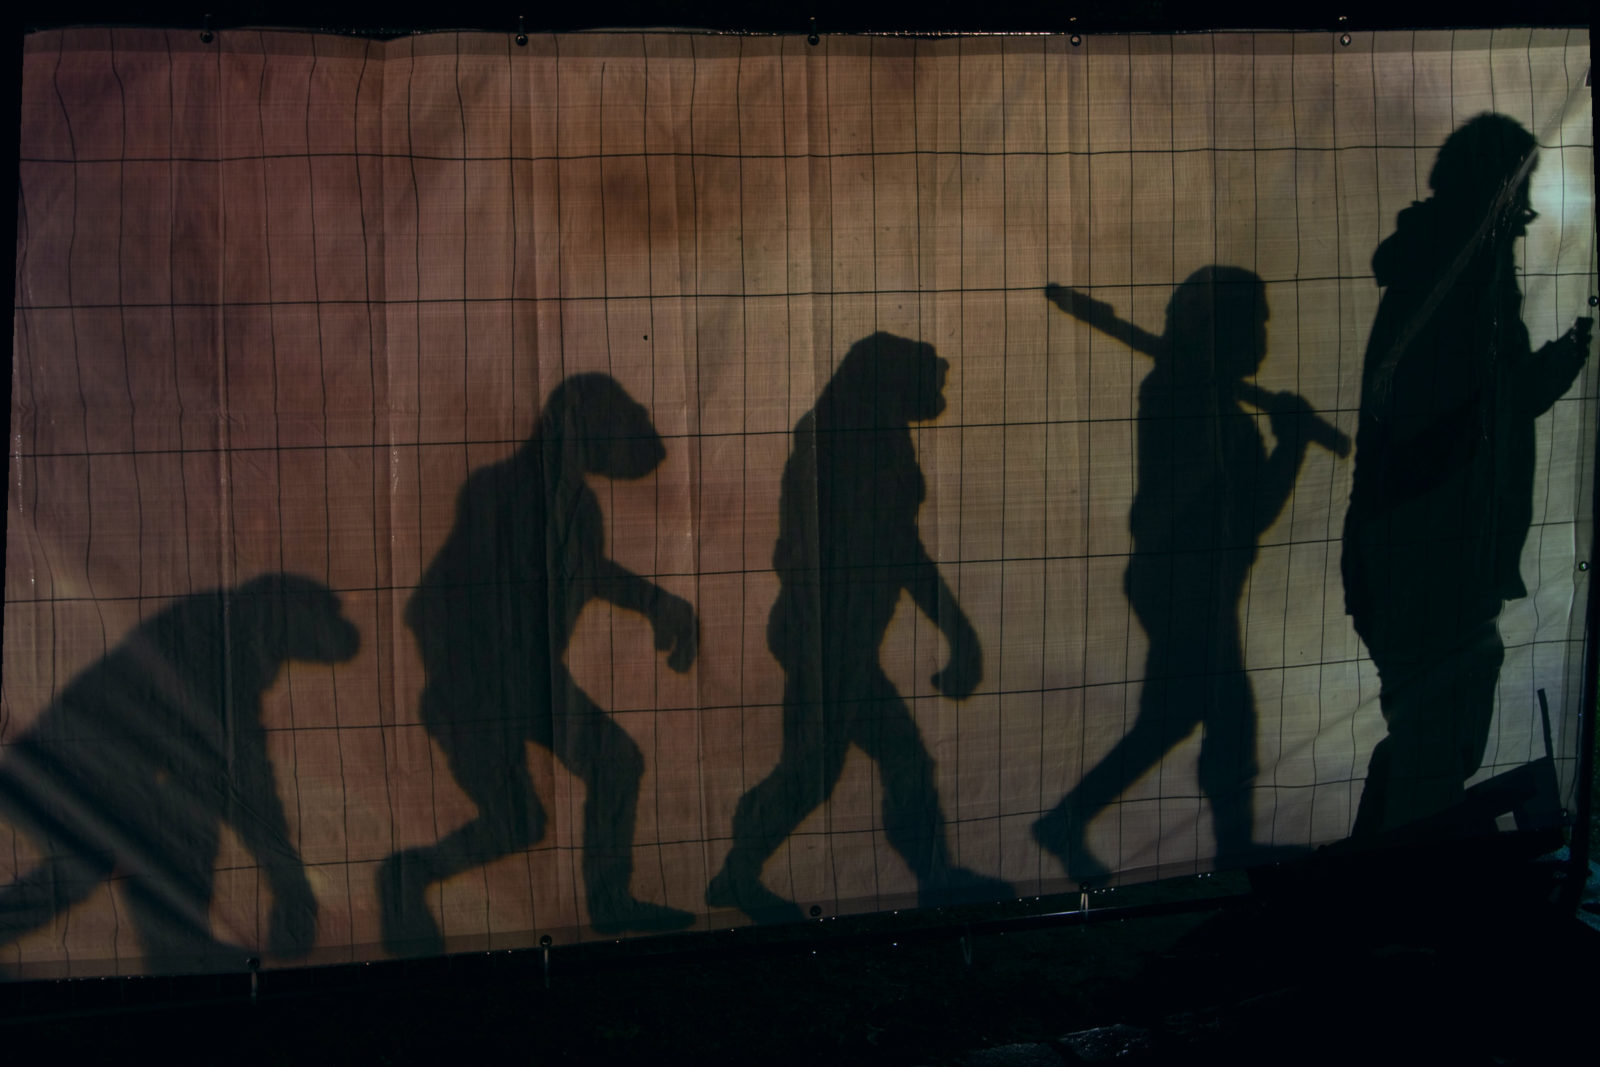 """The March of Progress"" human evolution shadow art"